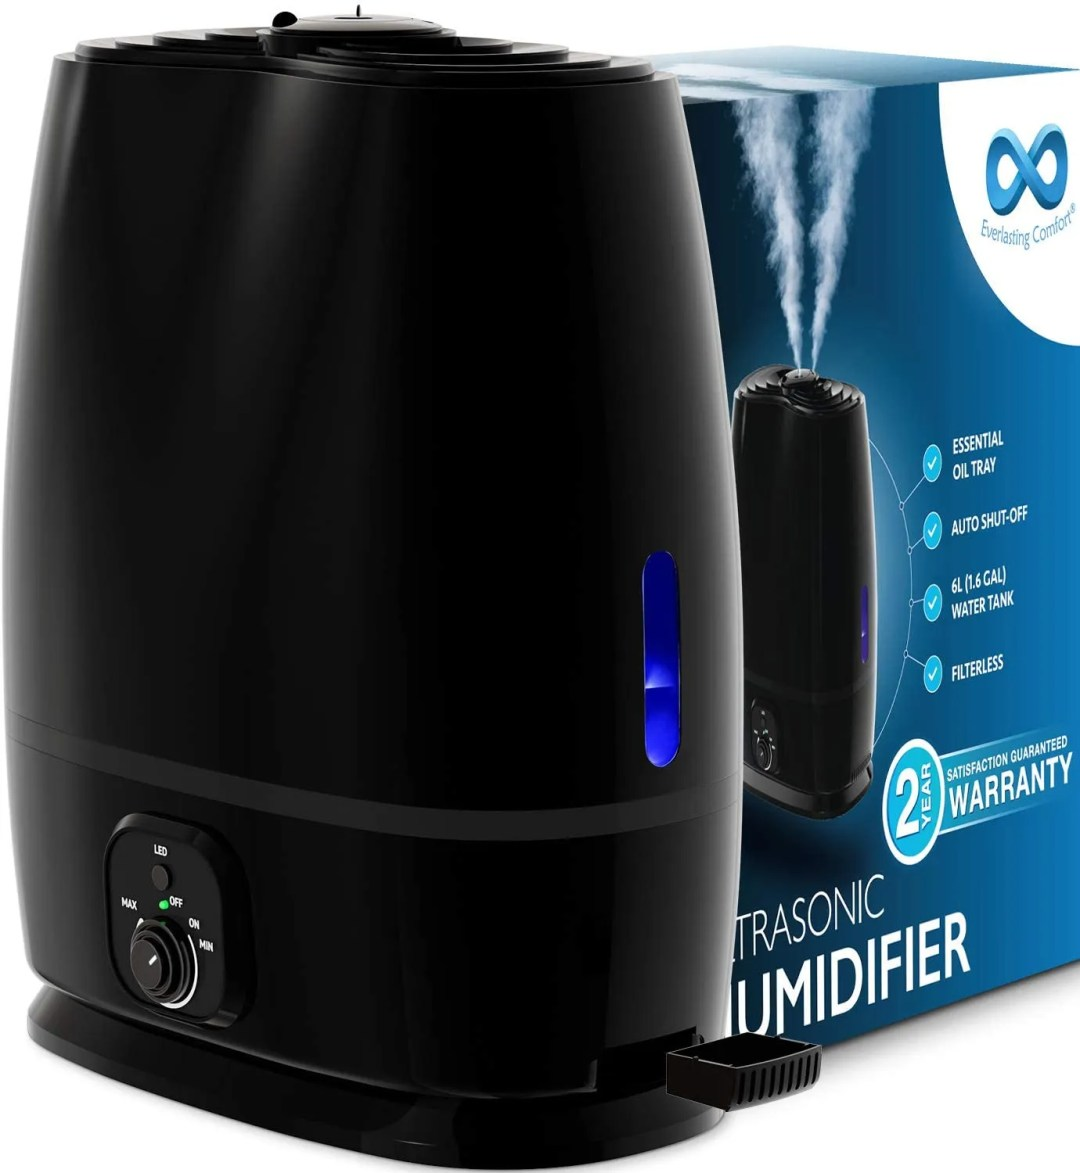 Comfort Humidifiers for home office with essential oil tray to make your workspace even more relaxing and enjoyable.